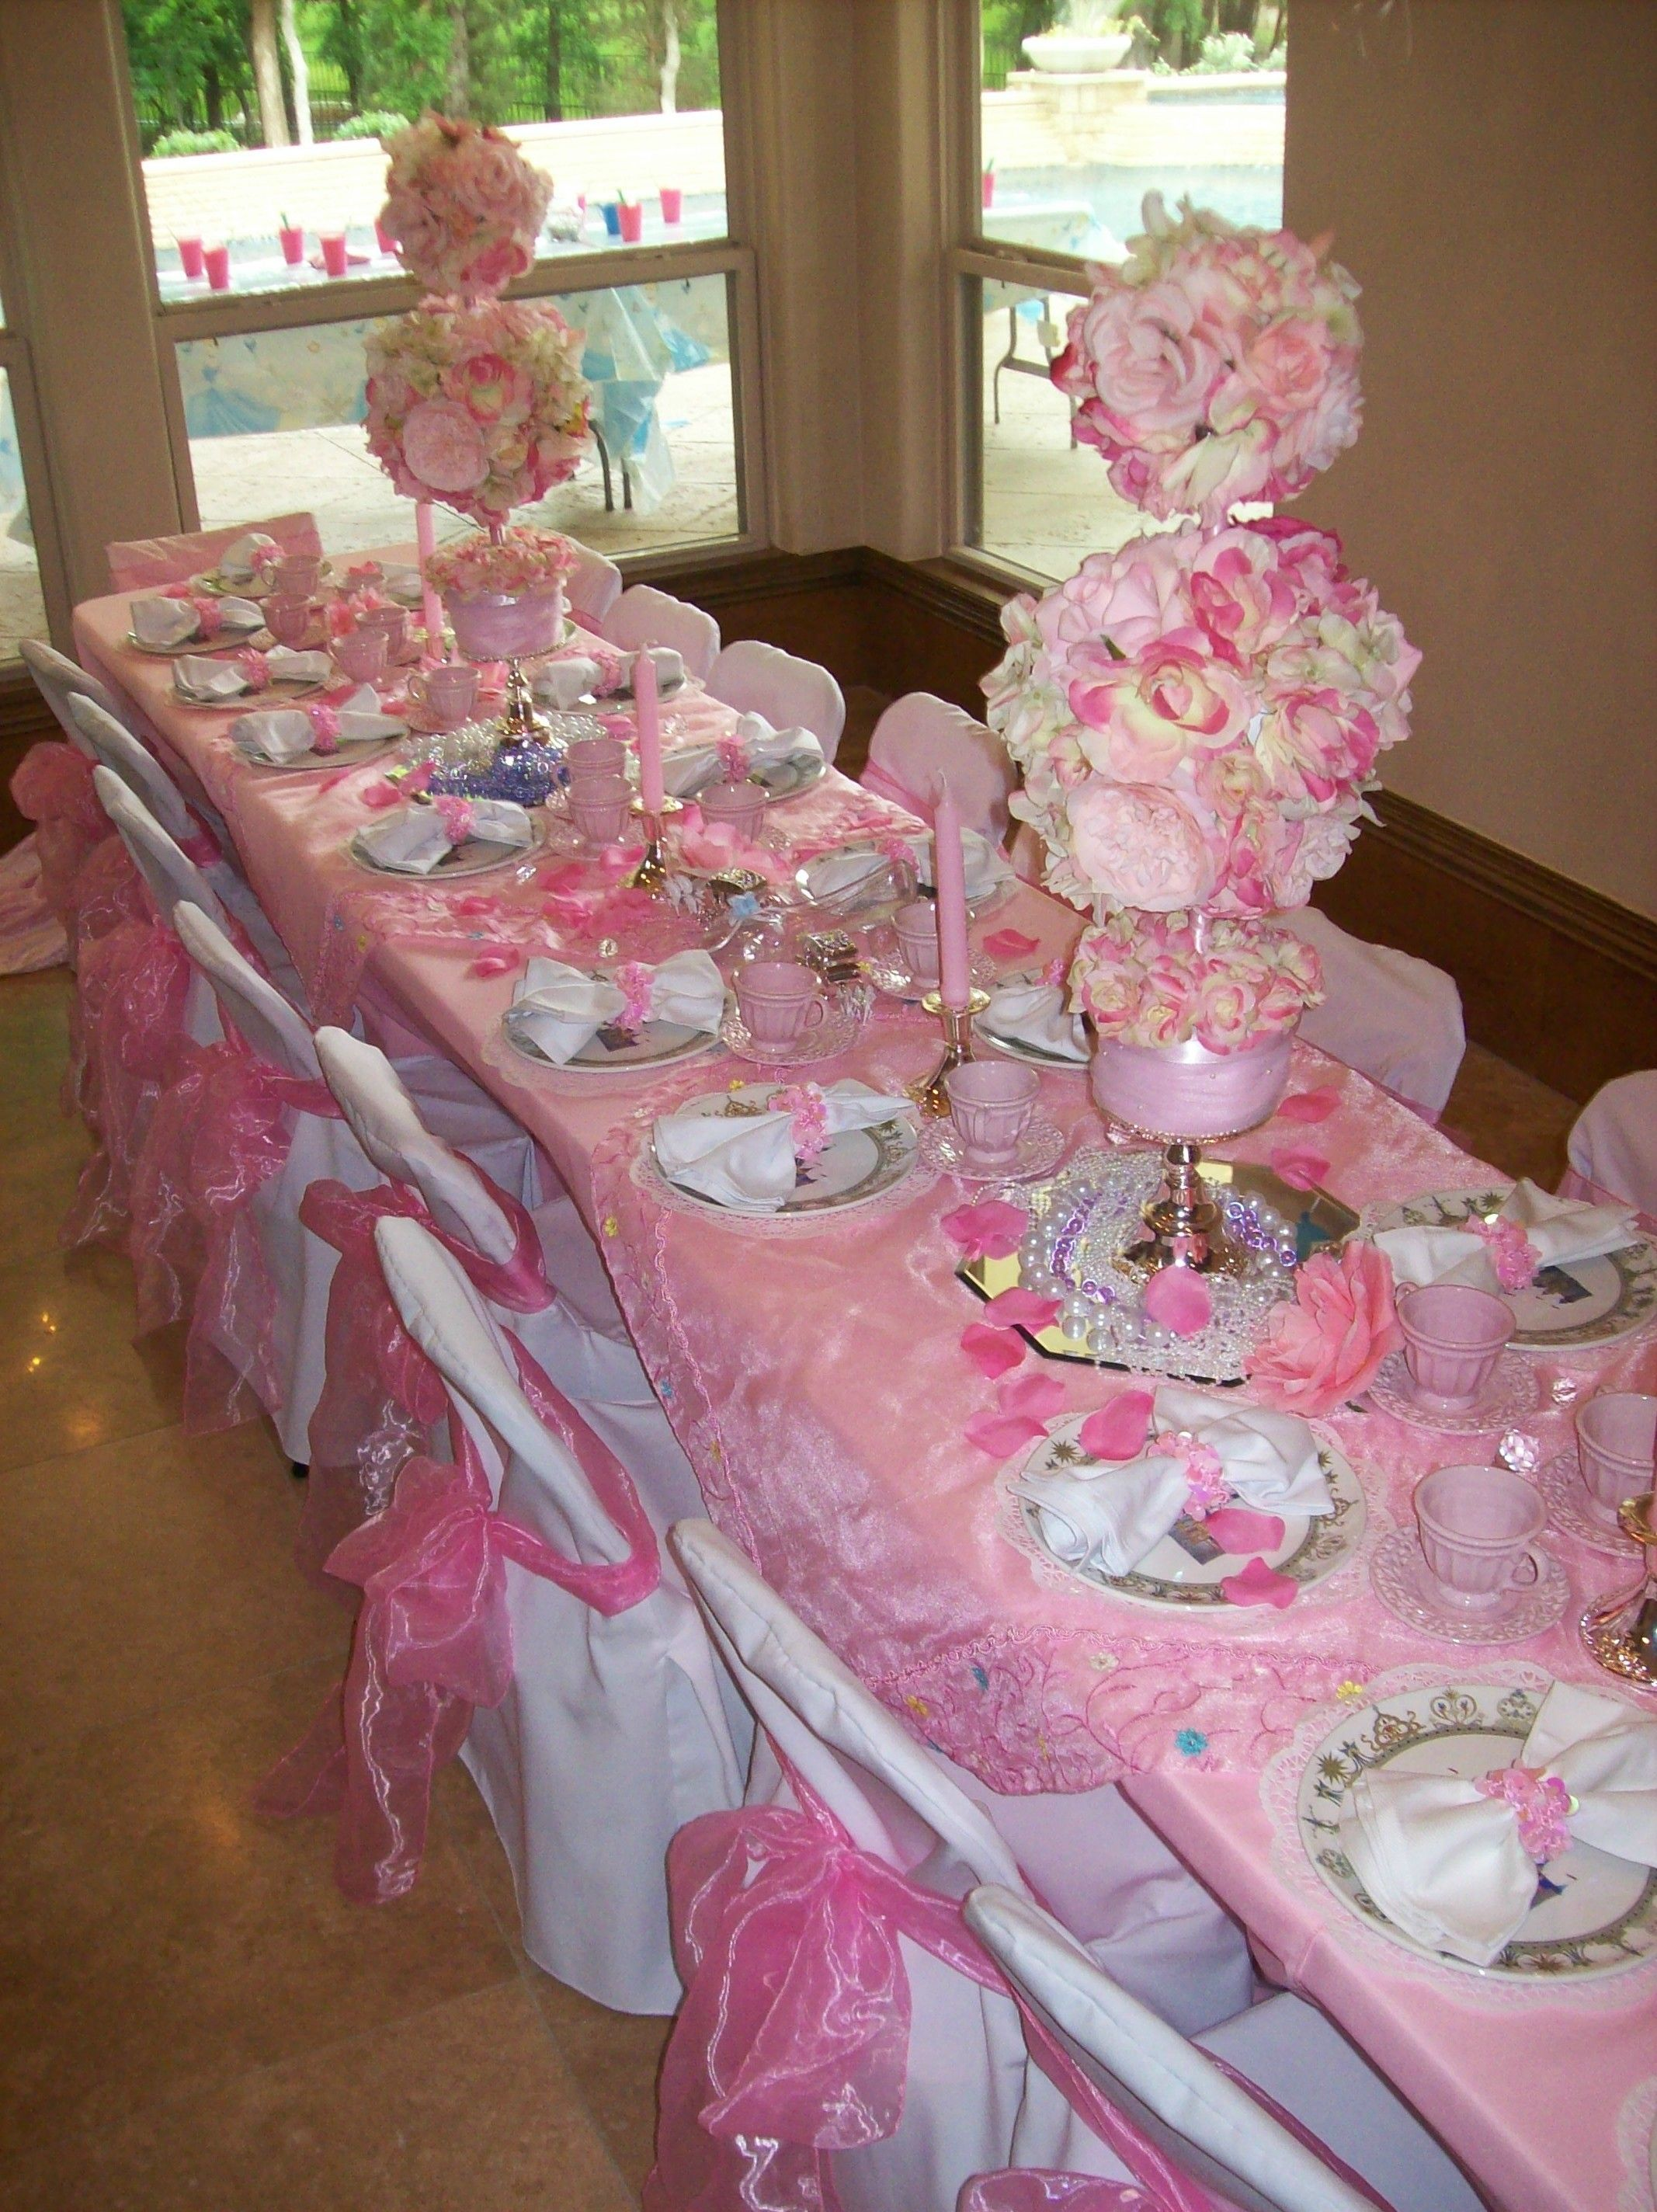 spa party ideas for girls birthday | parties, princess ...